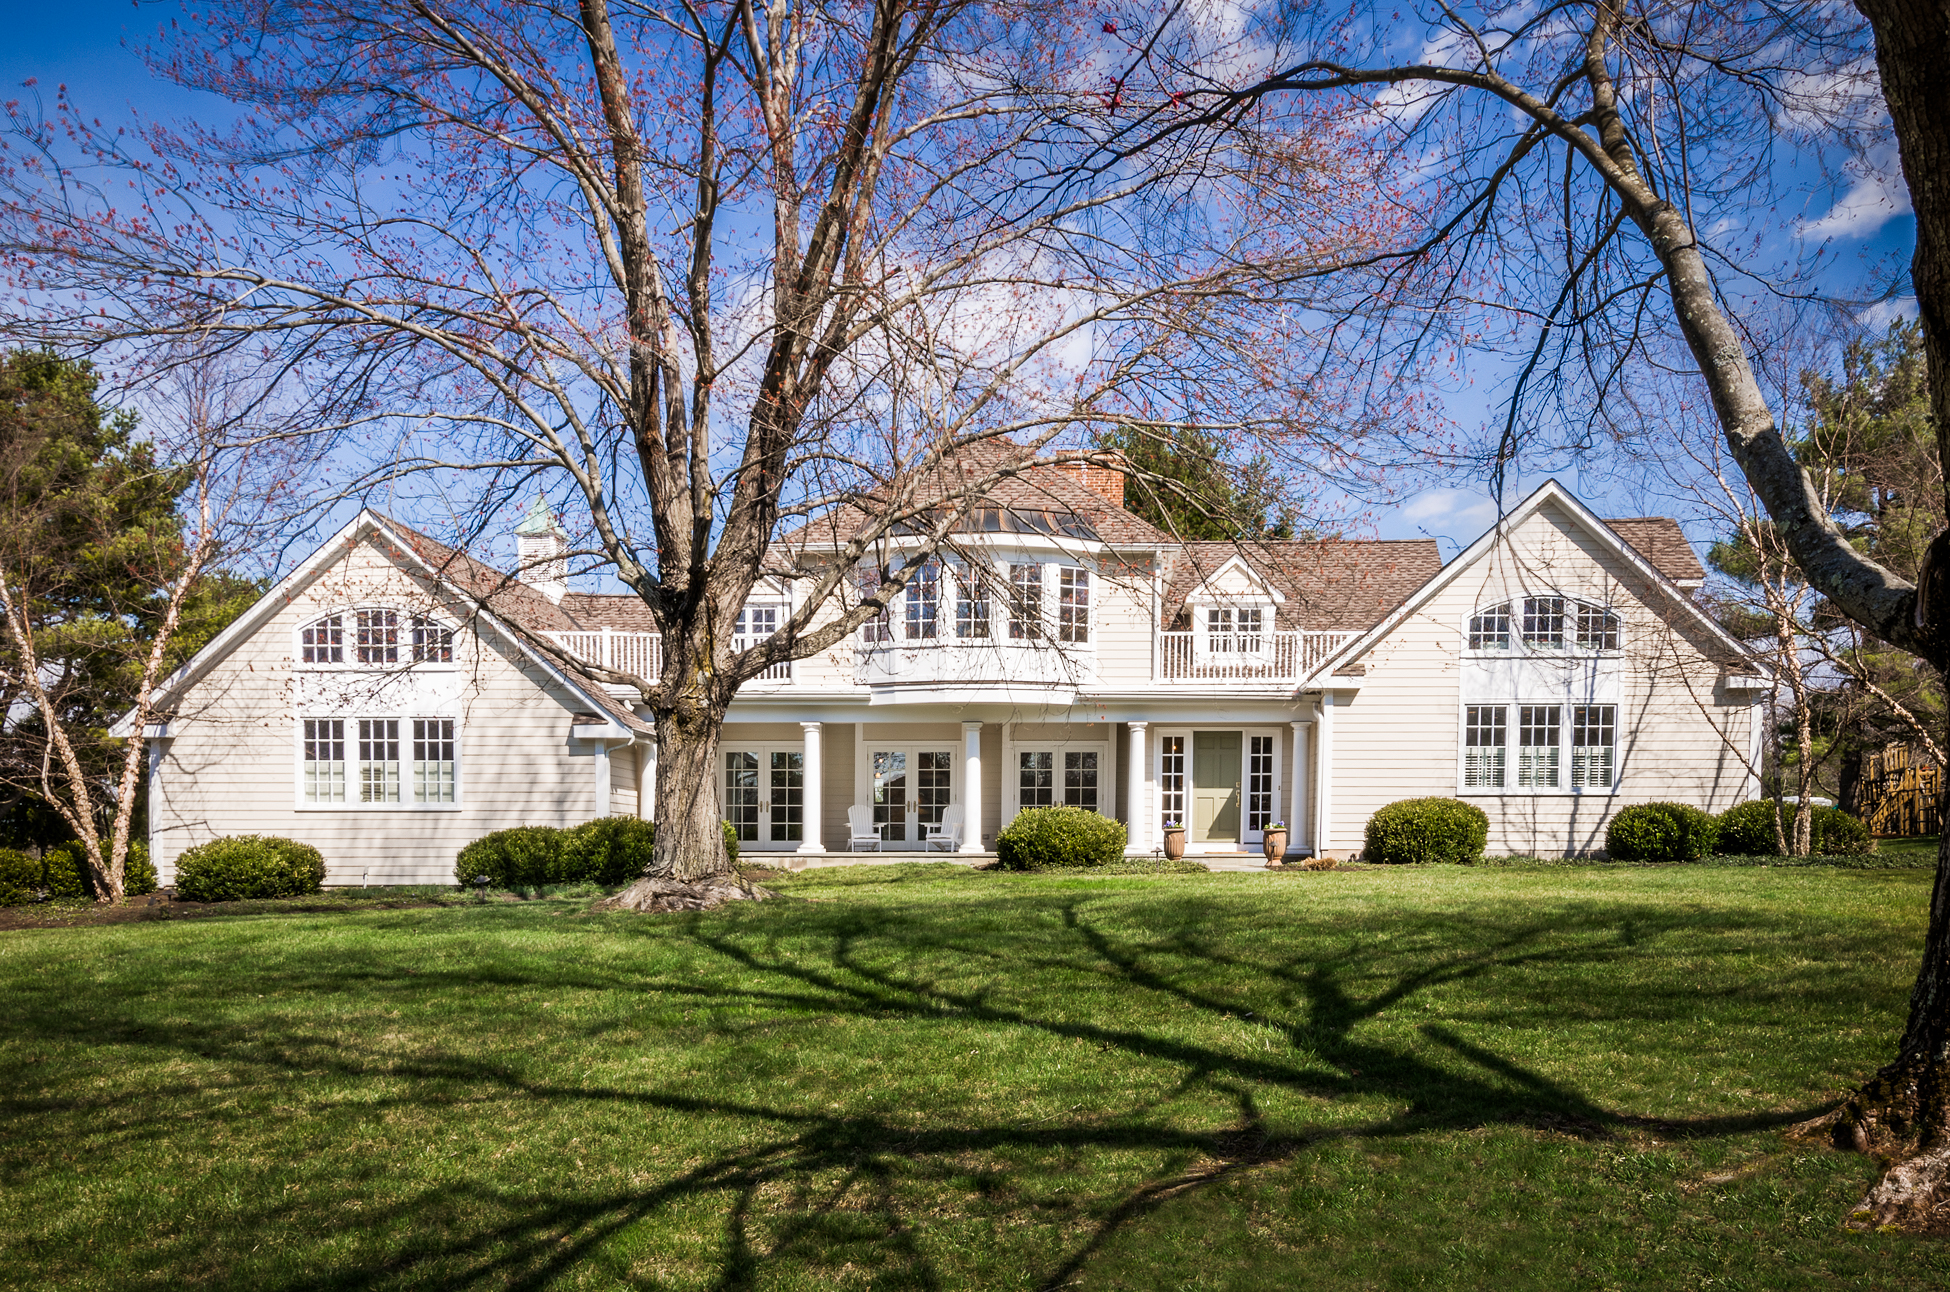 Single Family Home for Sale at Totally Reimagined And Simply Sensational - Montgomery Township 102 Rolling Hill Road Skillman, New Jersey 08558 United States